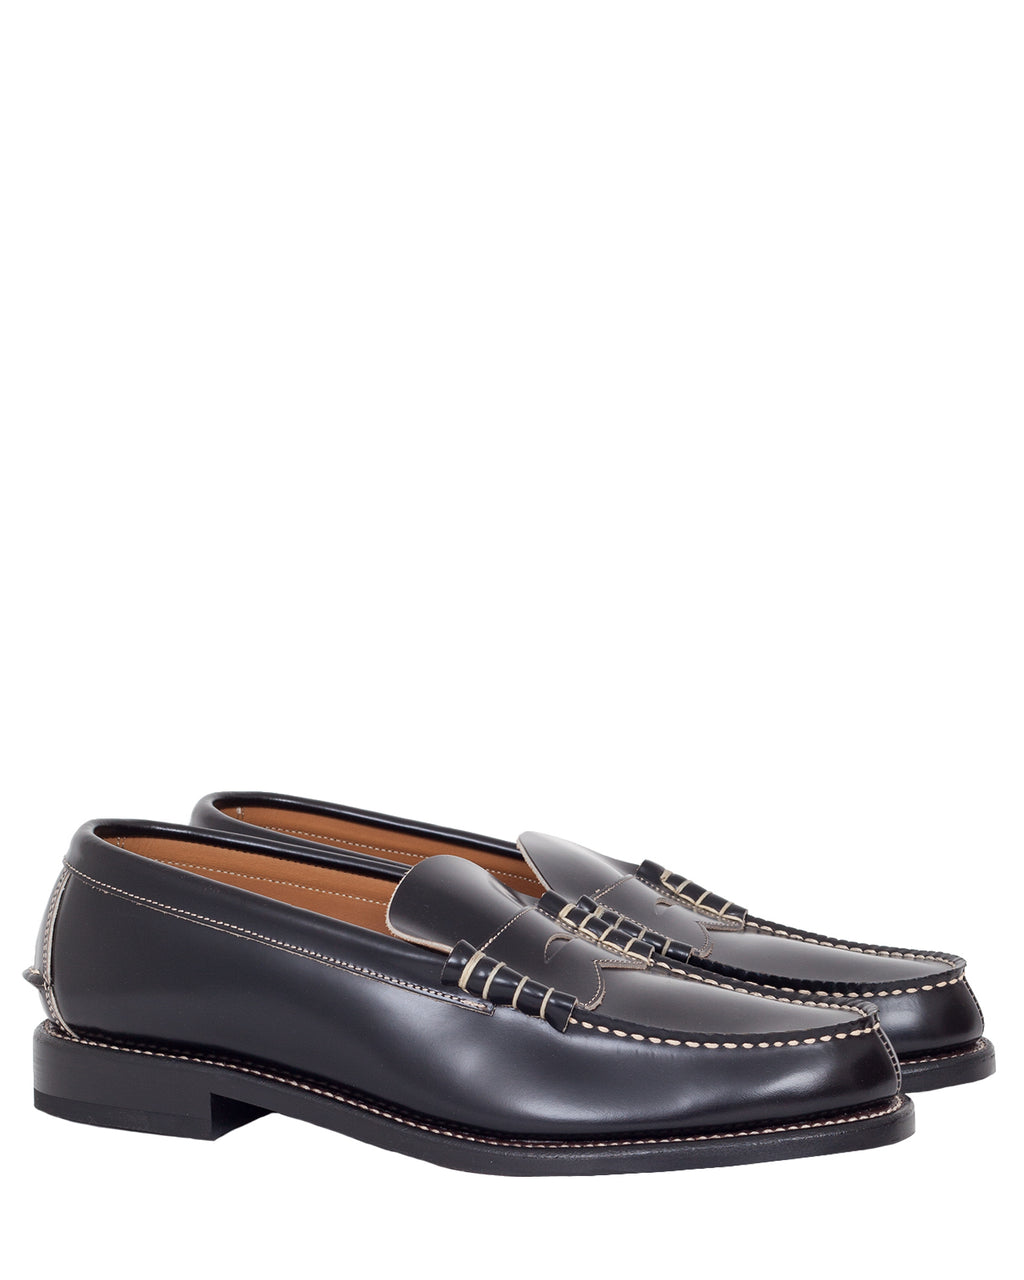 Glad Hand & Co x Regal, Coin Loafers, Black